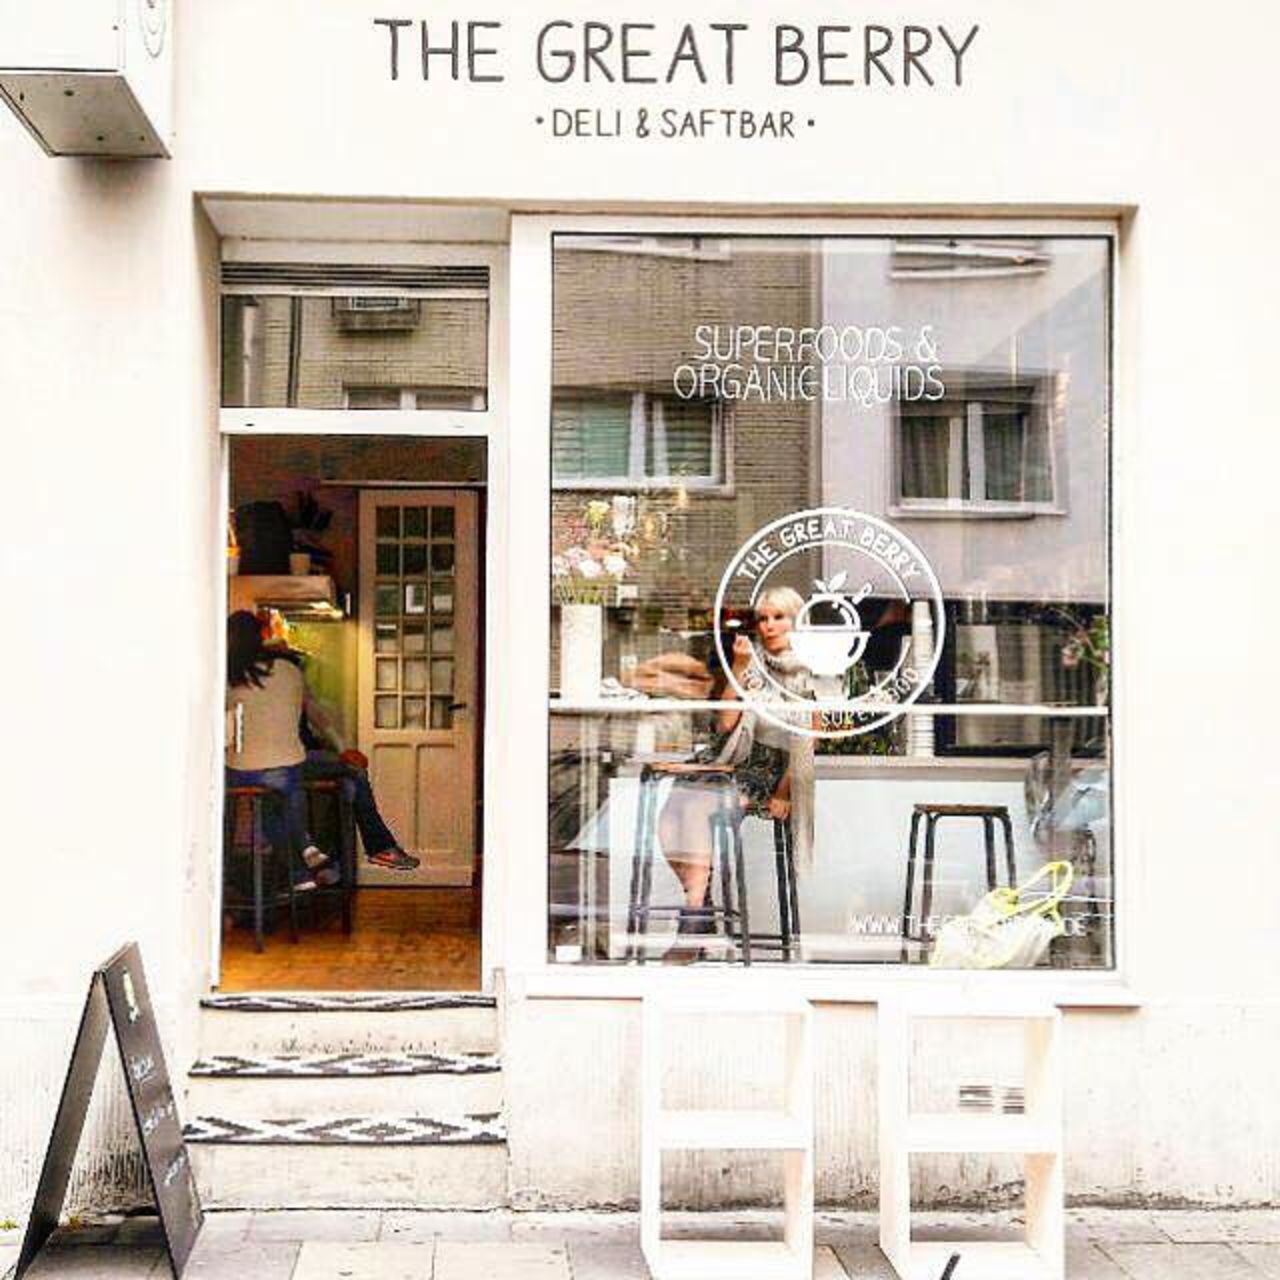 A photo of The Great Berry